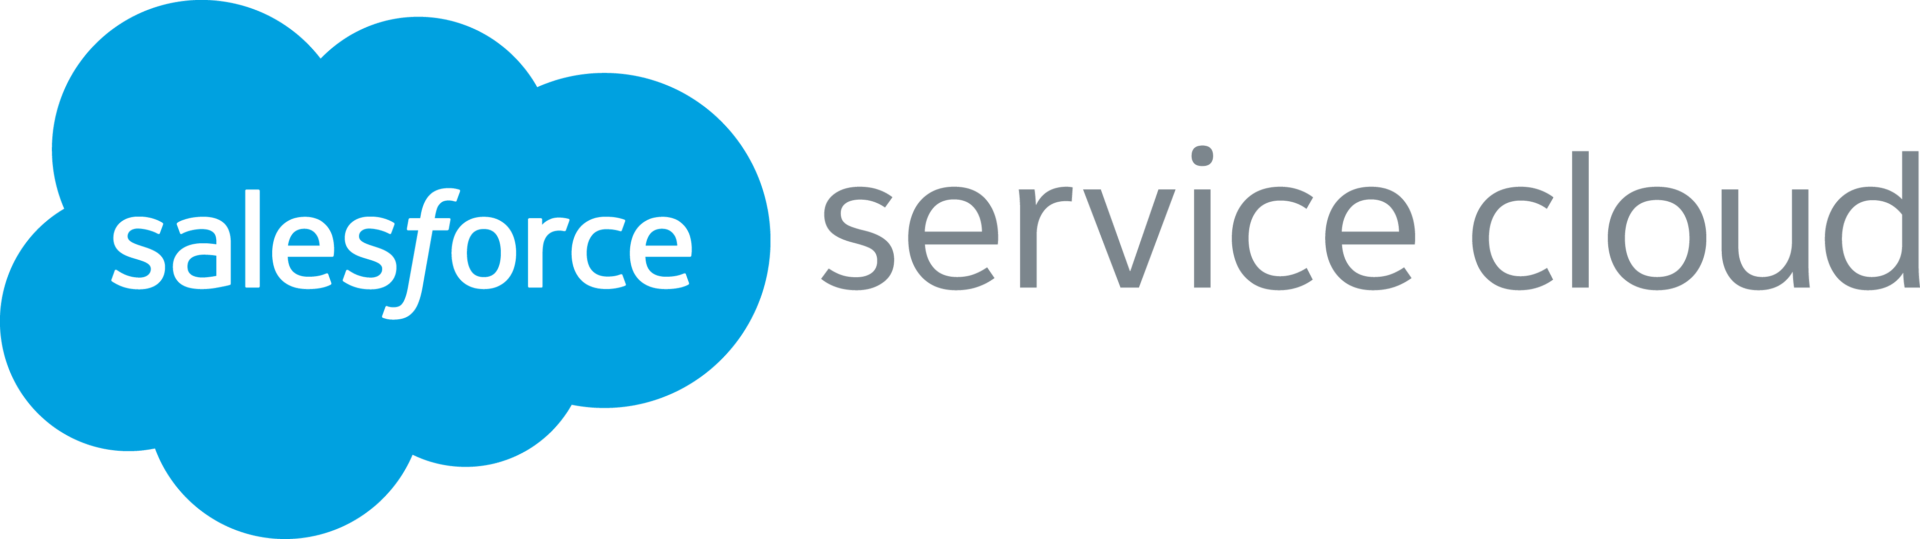 Salesforce-Service-Cloud-Logo